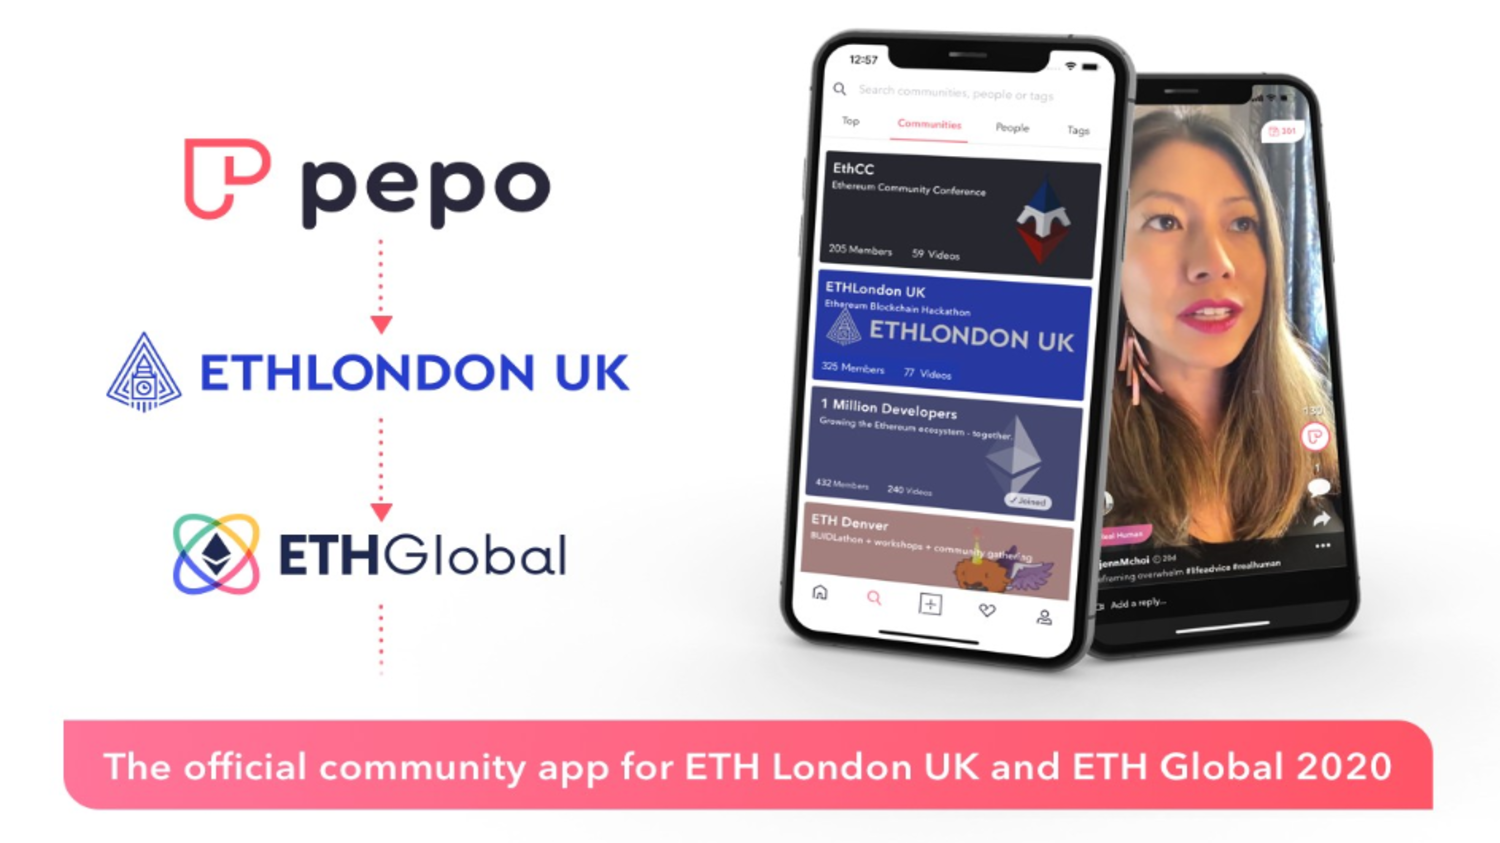 Pepo — the Official Community App for ETHLondonUK, ETHGlobal 2020, and beyond